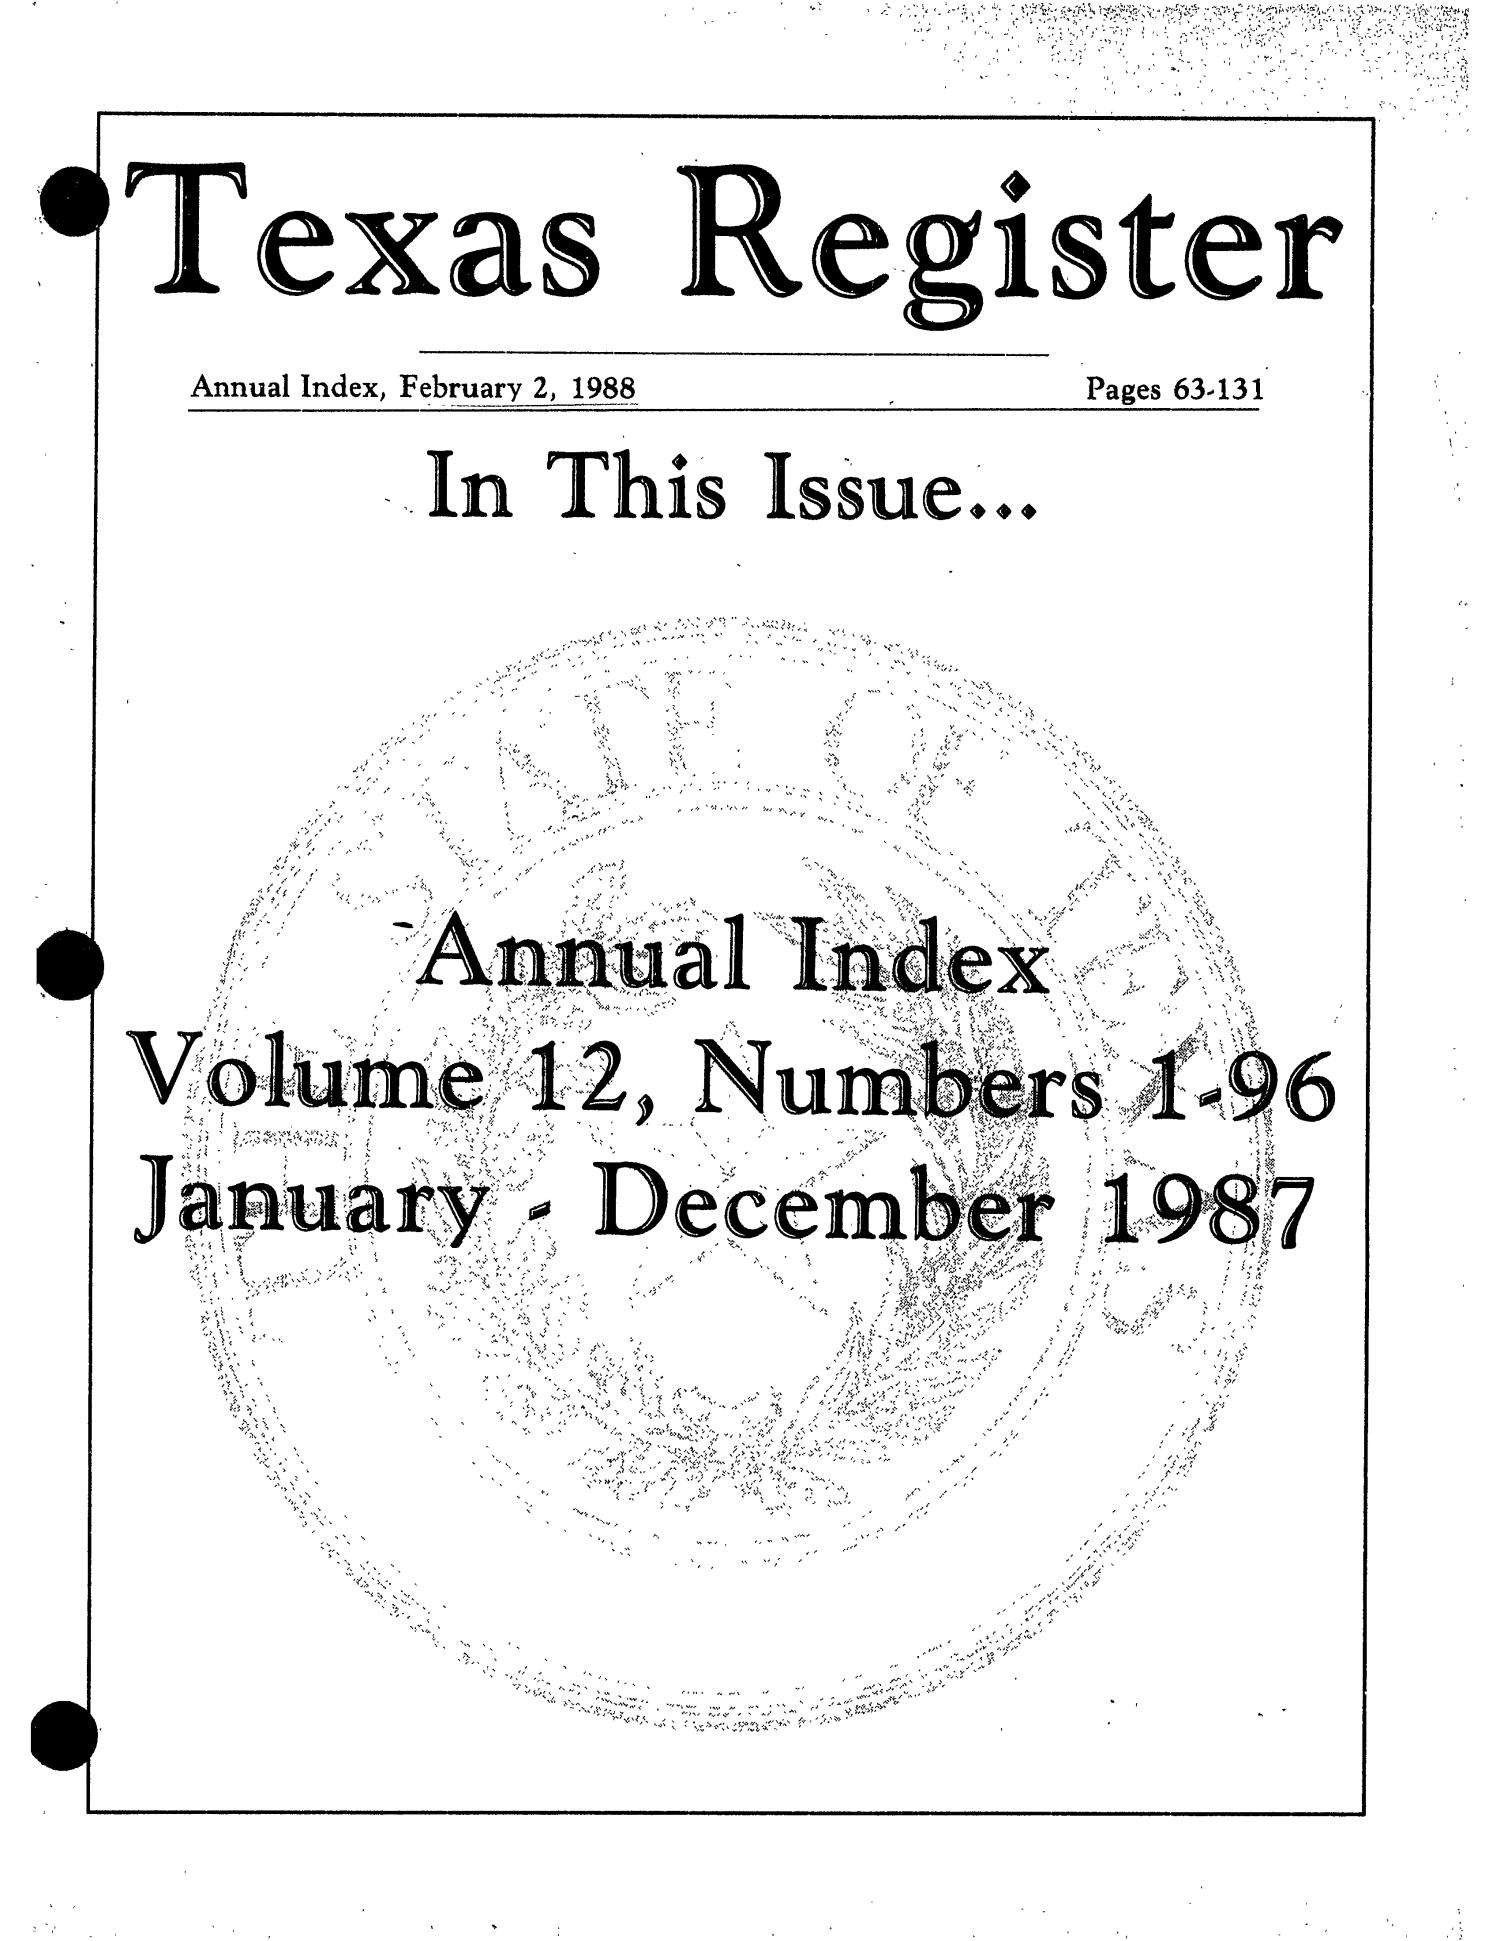 Texas Register: Annual Index January - December 1988, Volume 13 Numbers [1-96] - pages 225-350, February 3, 1989                                                                                                      Title Page